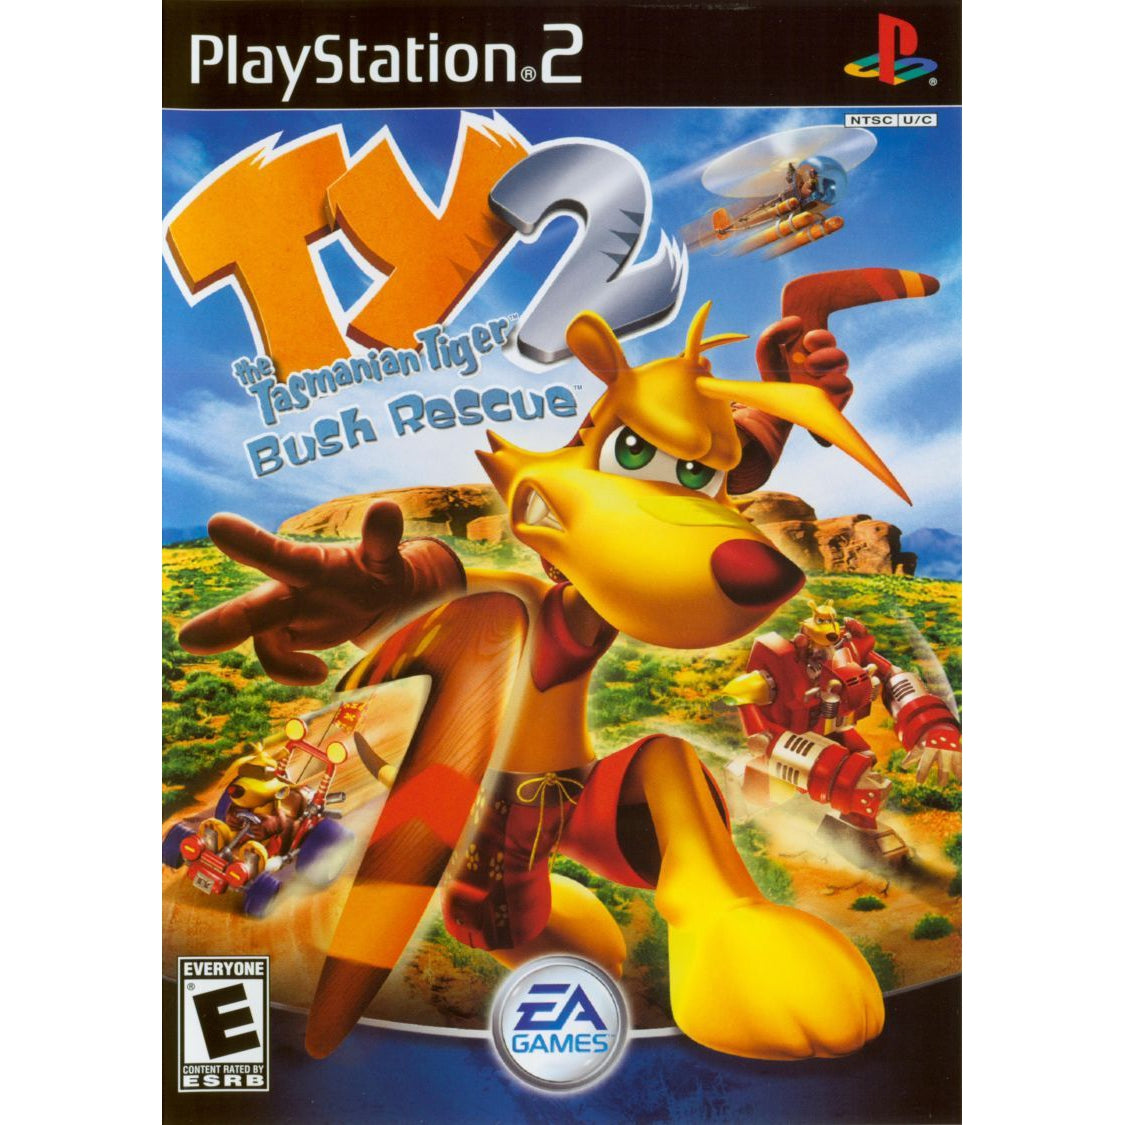 Ty the Tasmanian Tiger 2: Bush Rescue - PlayStation 2 (PS2) Game Complete - YourGamingShop.com - Buy, Sell, Trade Video Games Online. 120 Day Warranty. Satisfaction Guaranteed.